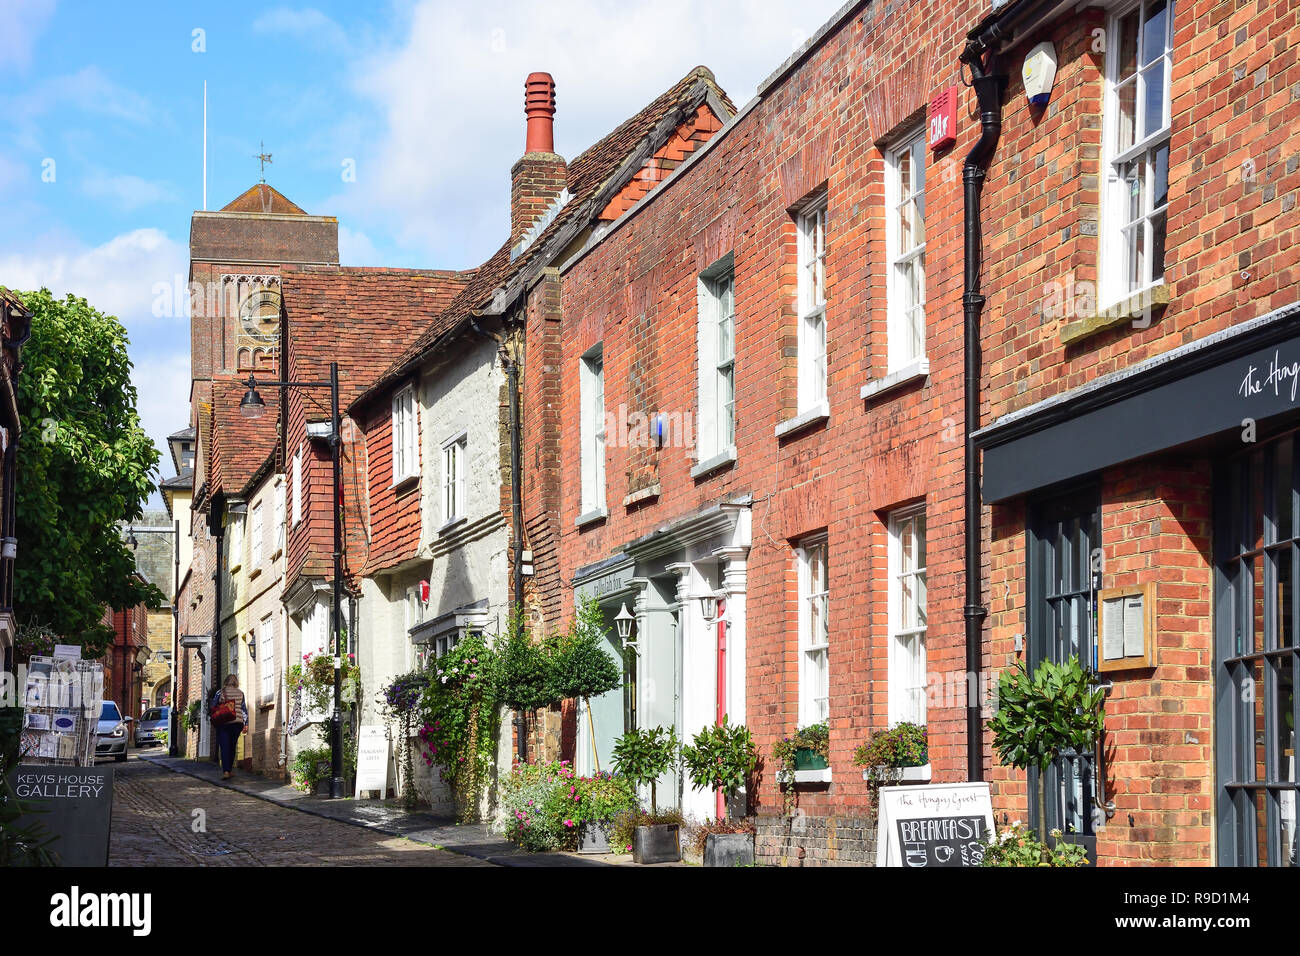 Cobbled street and period houses, Lombard Street, Petworth, West Sussex, England, United Kingdom - Stock Image